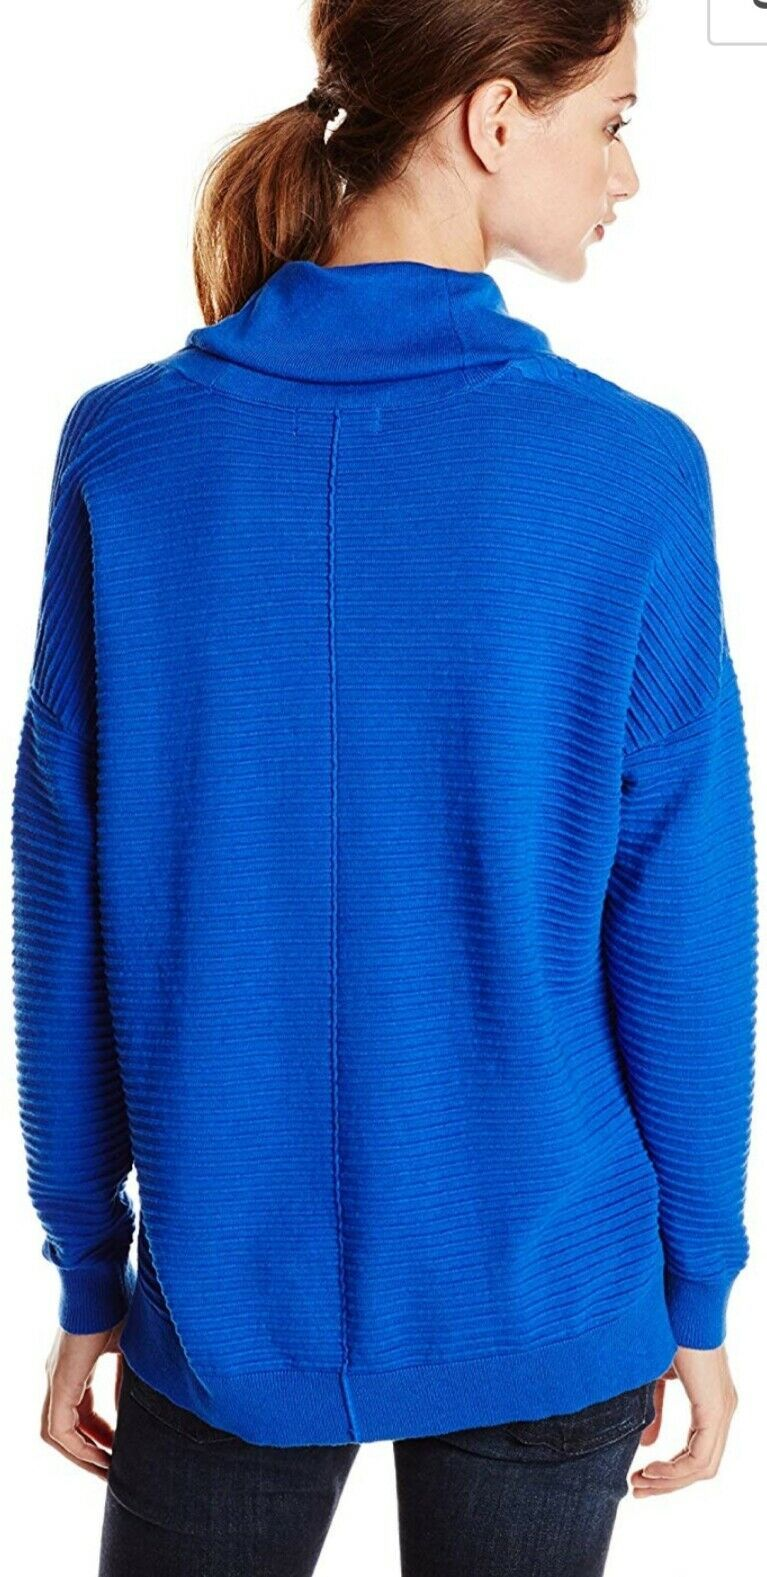 CALVIN KLEIN W RIBBED COWL NECK SWEATER BLU NWT $89.50